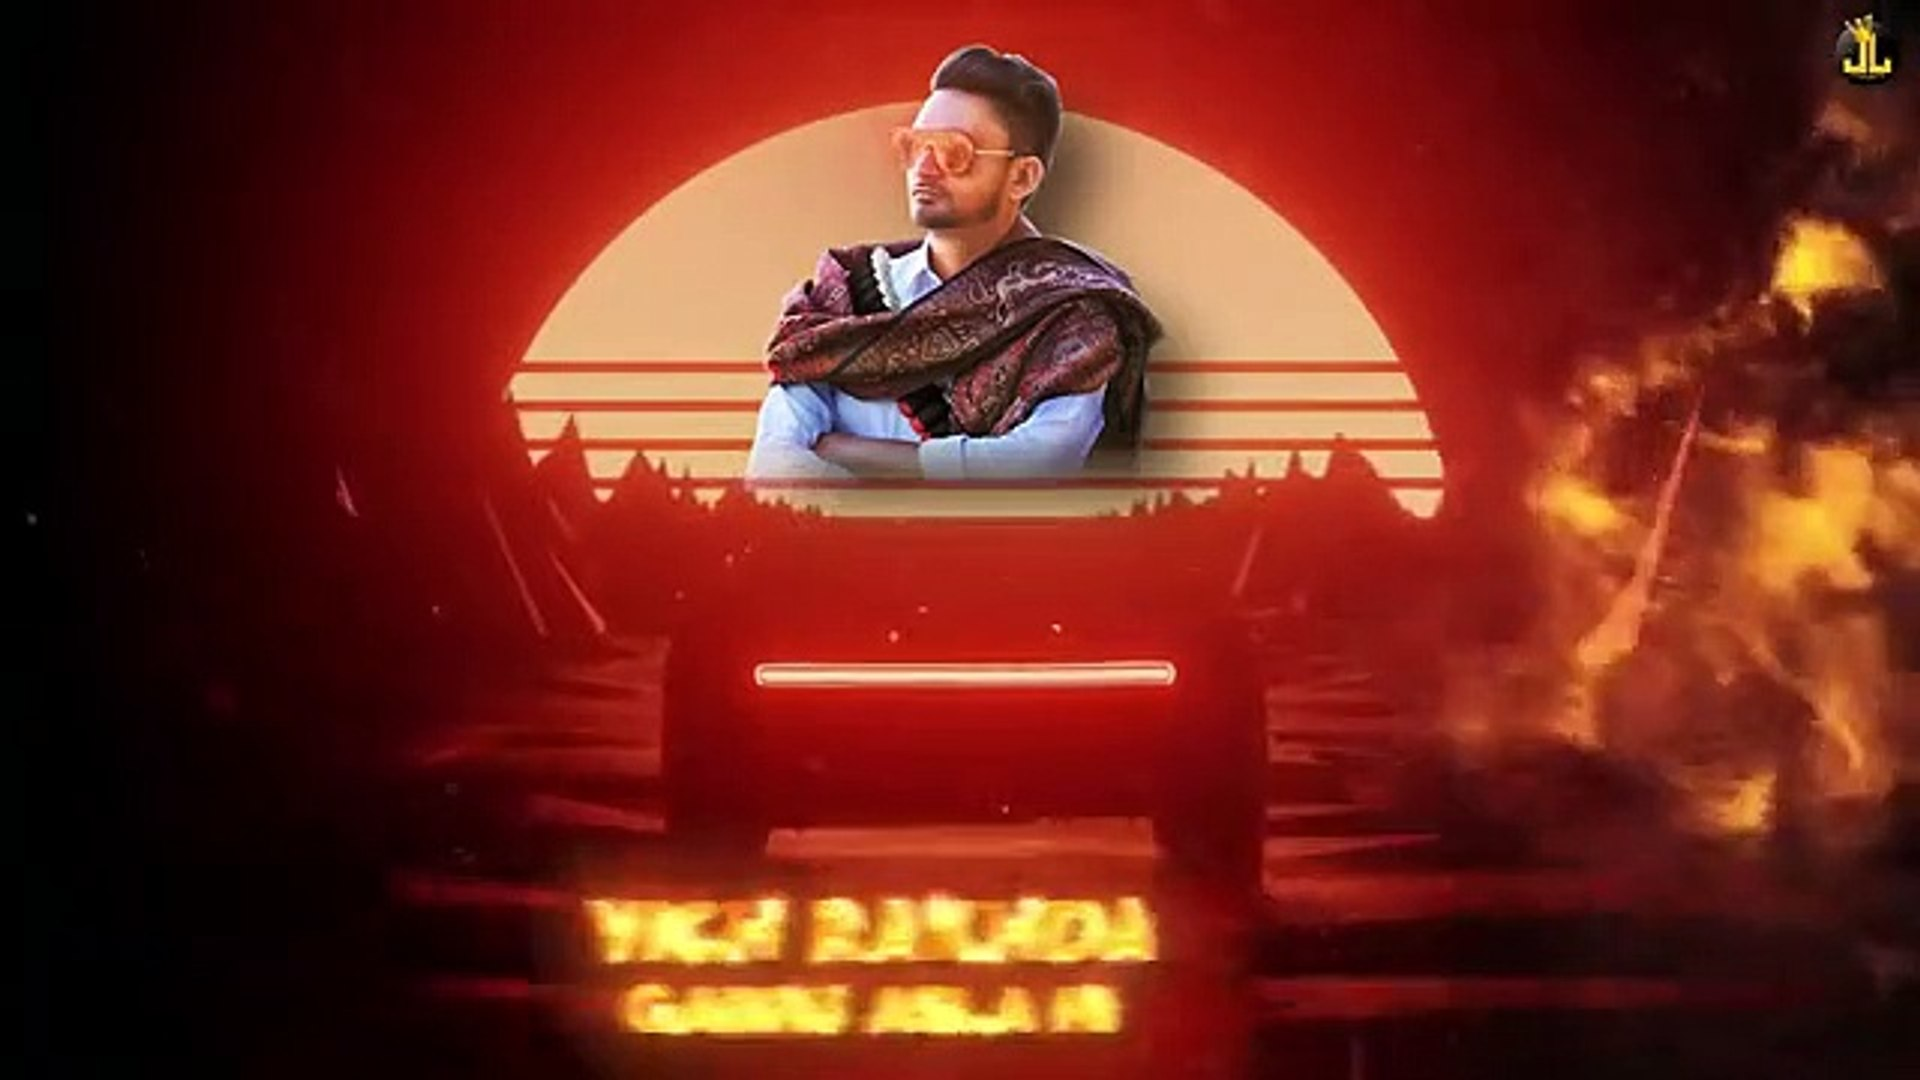 Cadillac  Sabi Bhinder _ The Kidd _ Latest Punjabi Songs 2020 _